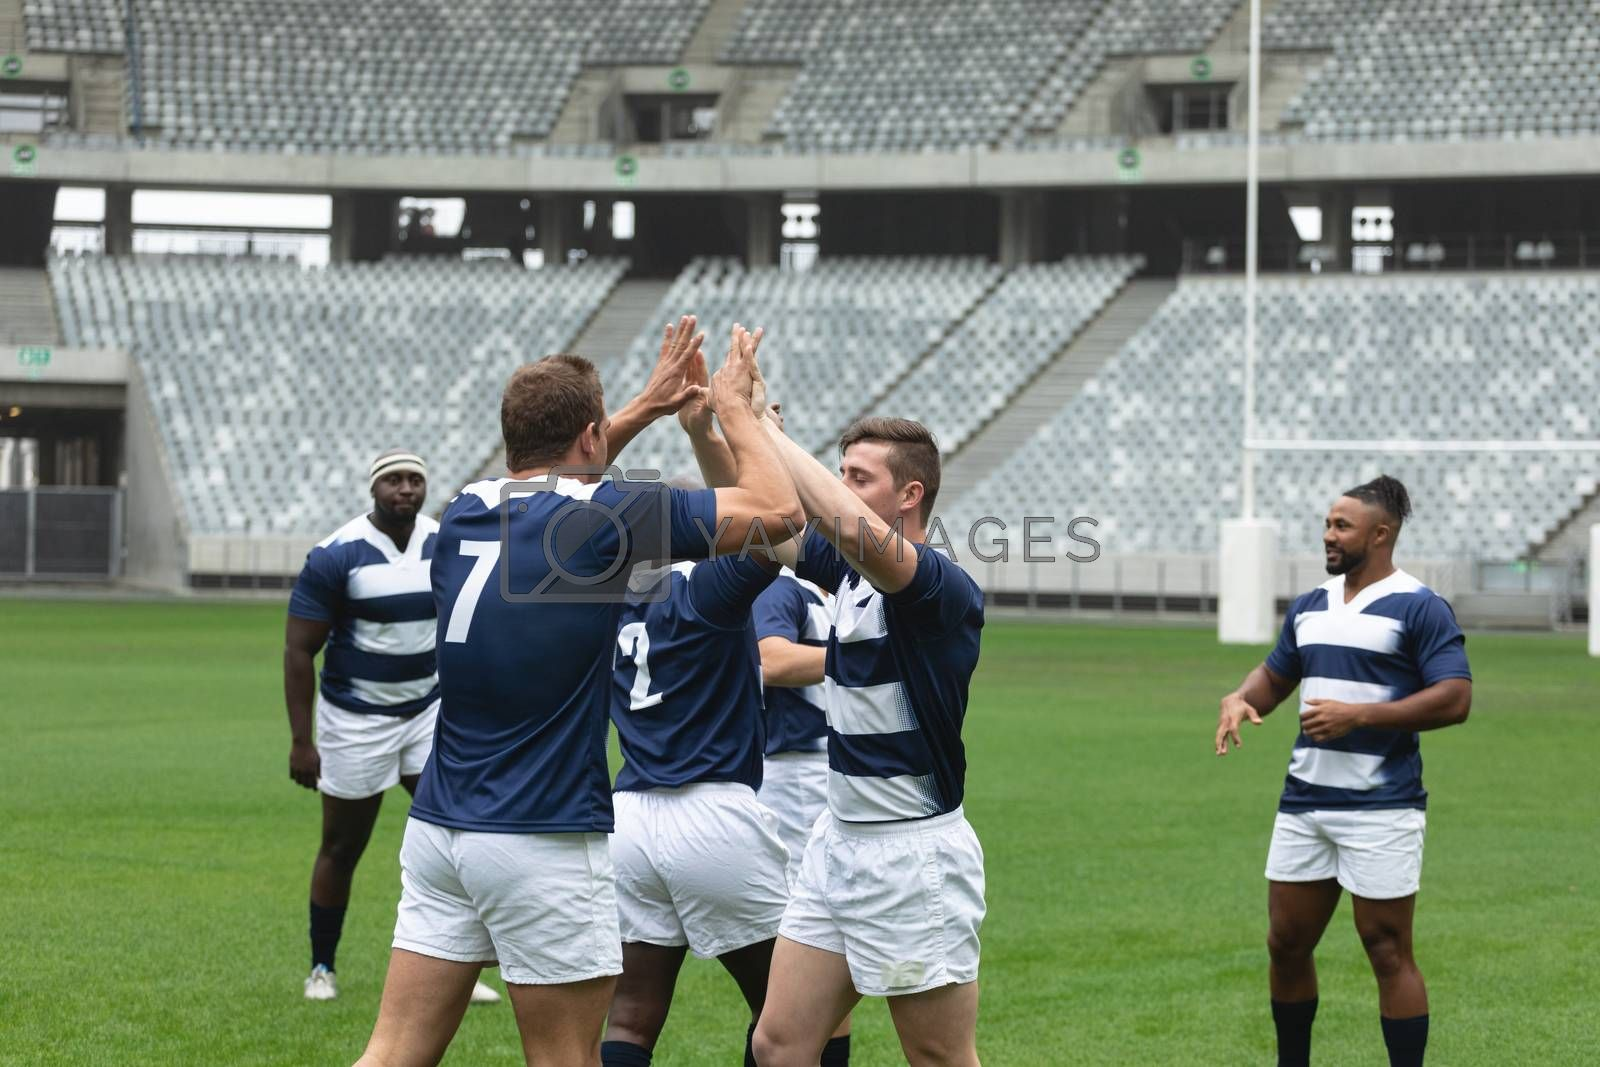 Side view of group of diverse male rugby players celebrating goal in stadium